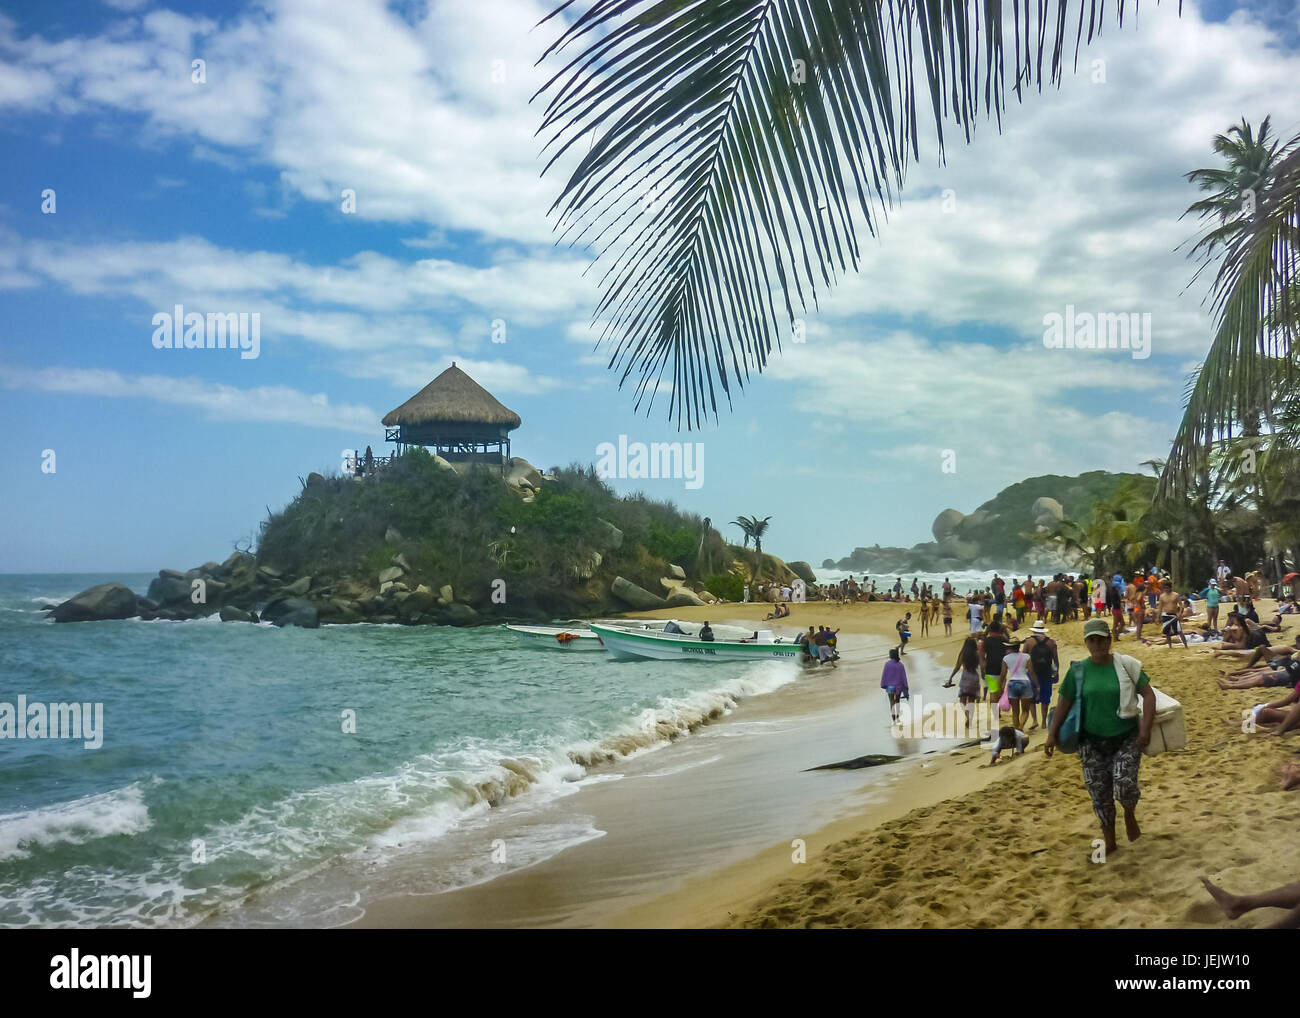 People at Cabo San Juan Beach in Colombia - Stock Image